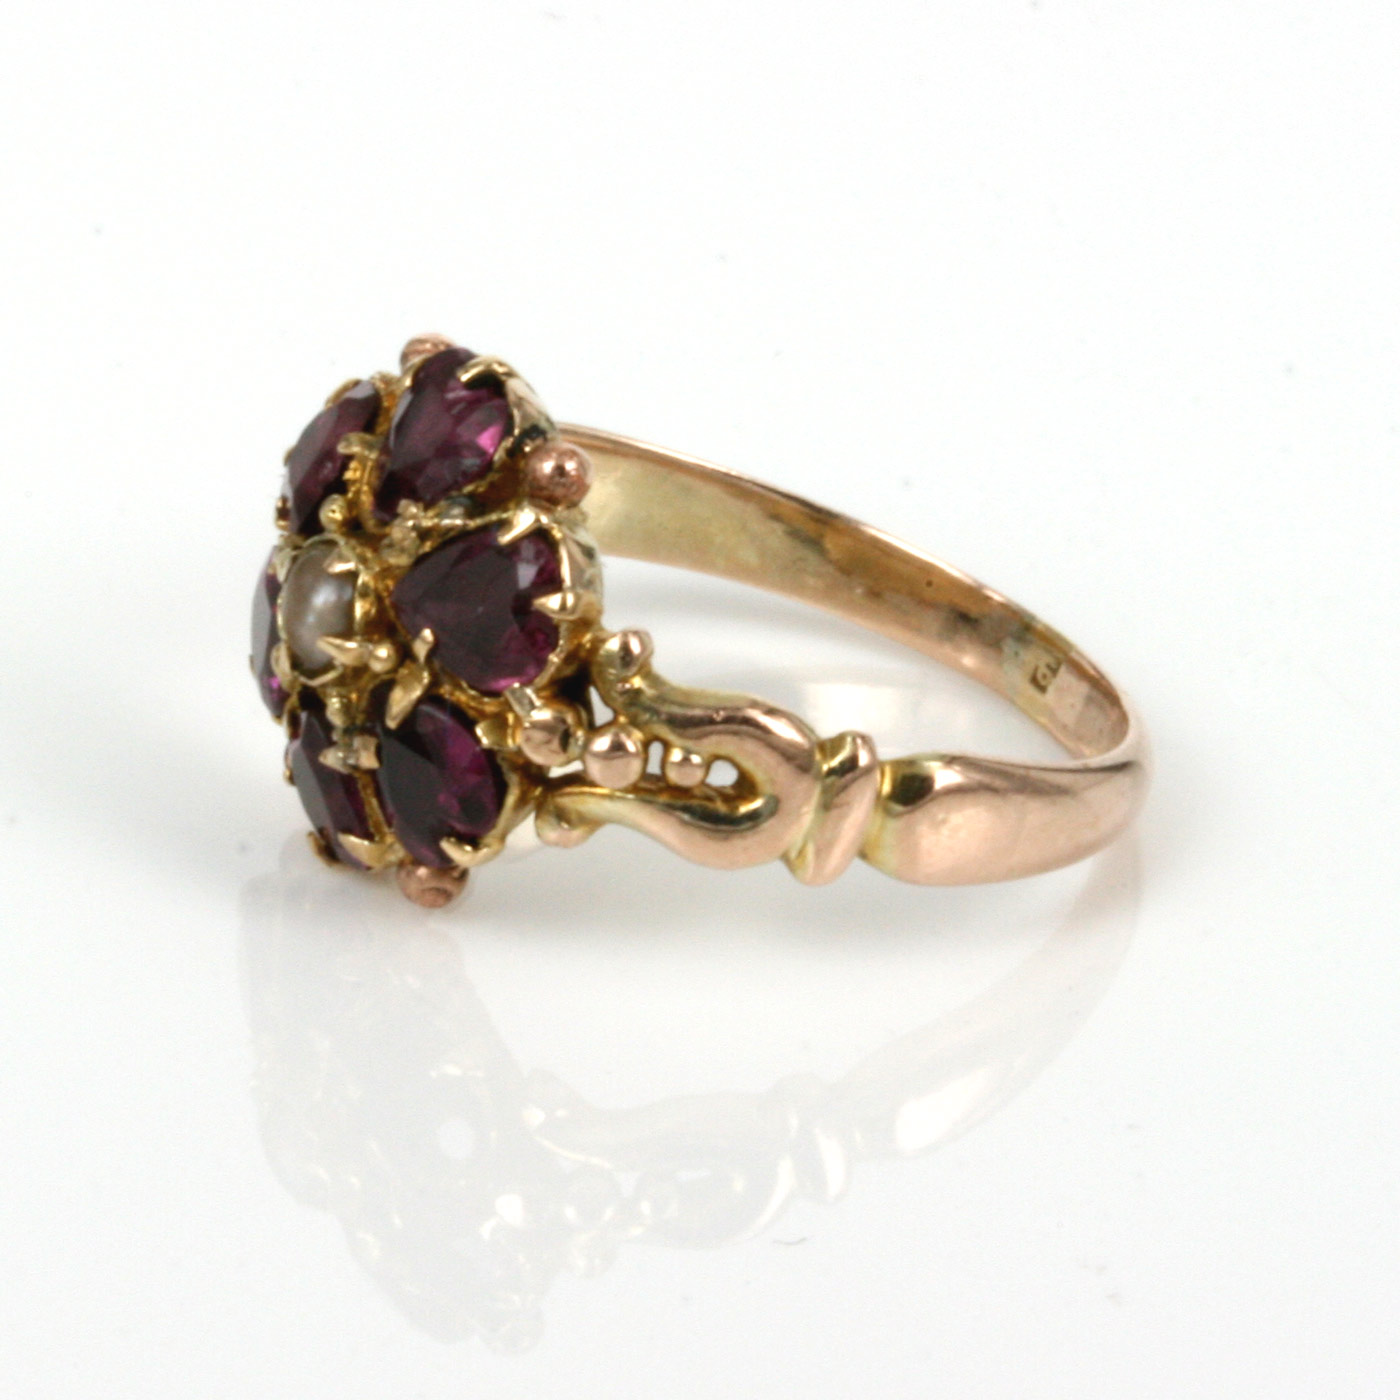 buy antique victorian era garnet and pearl ring sold items